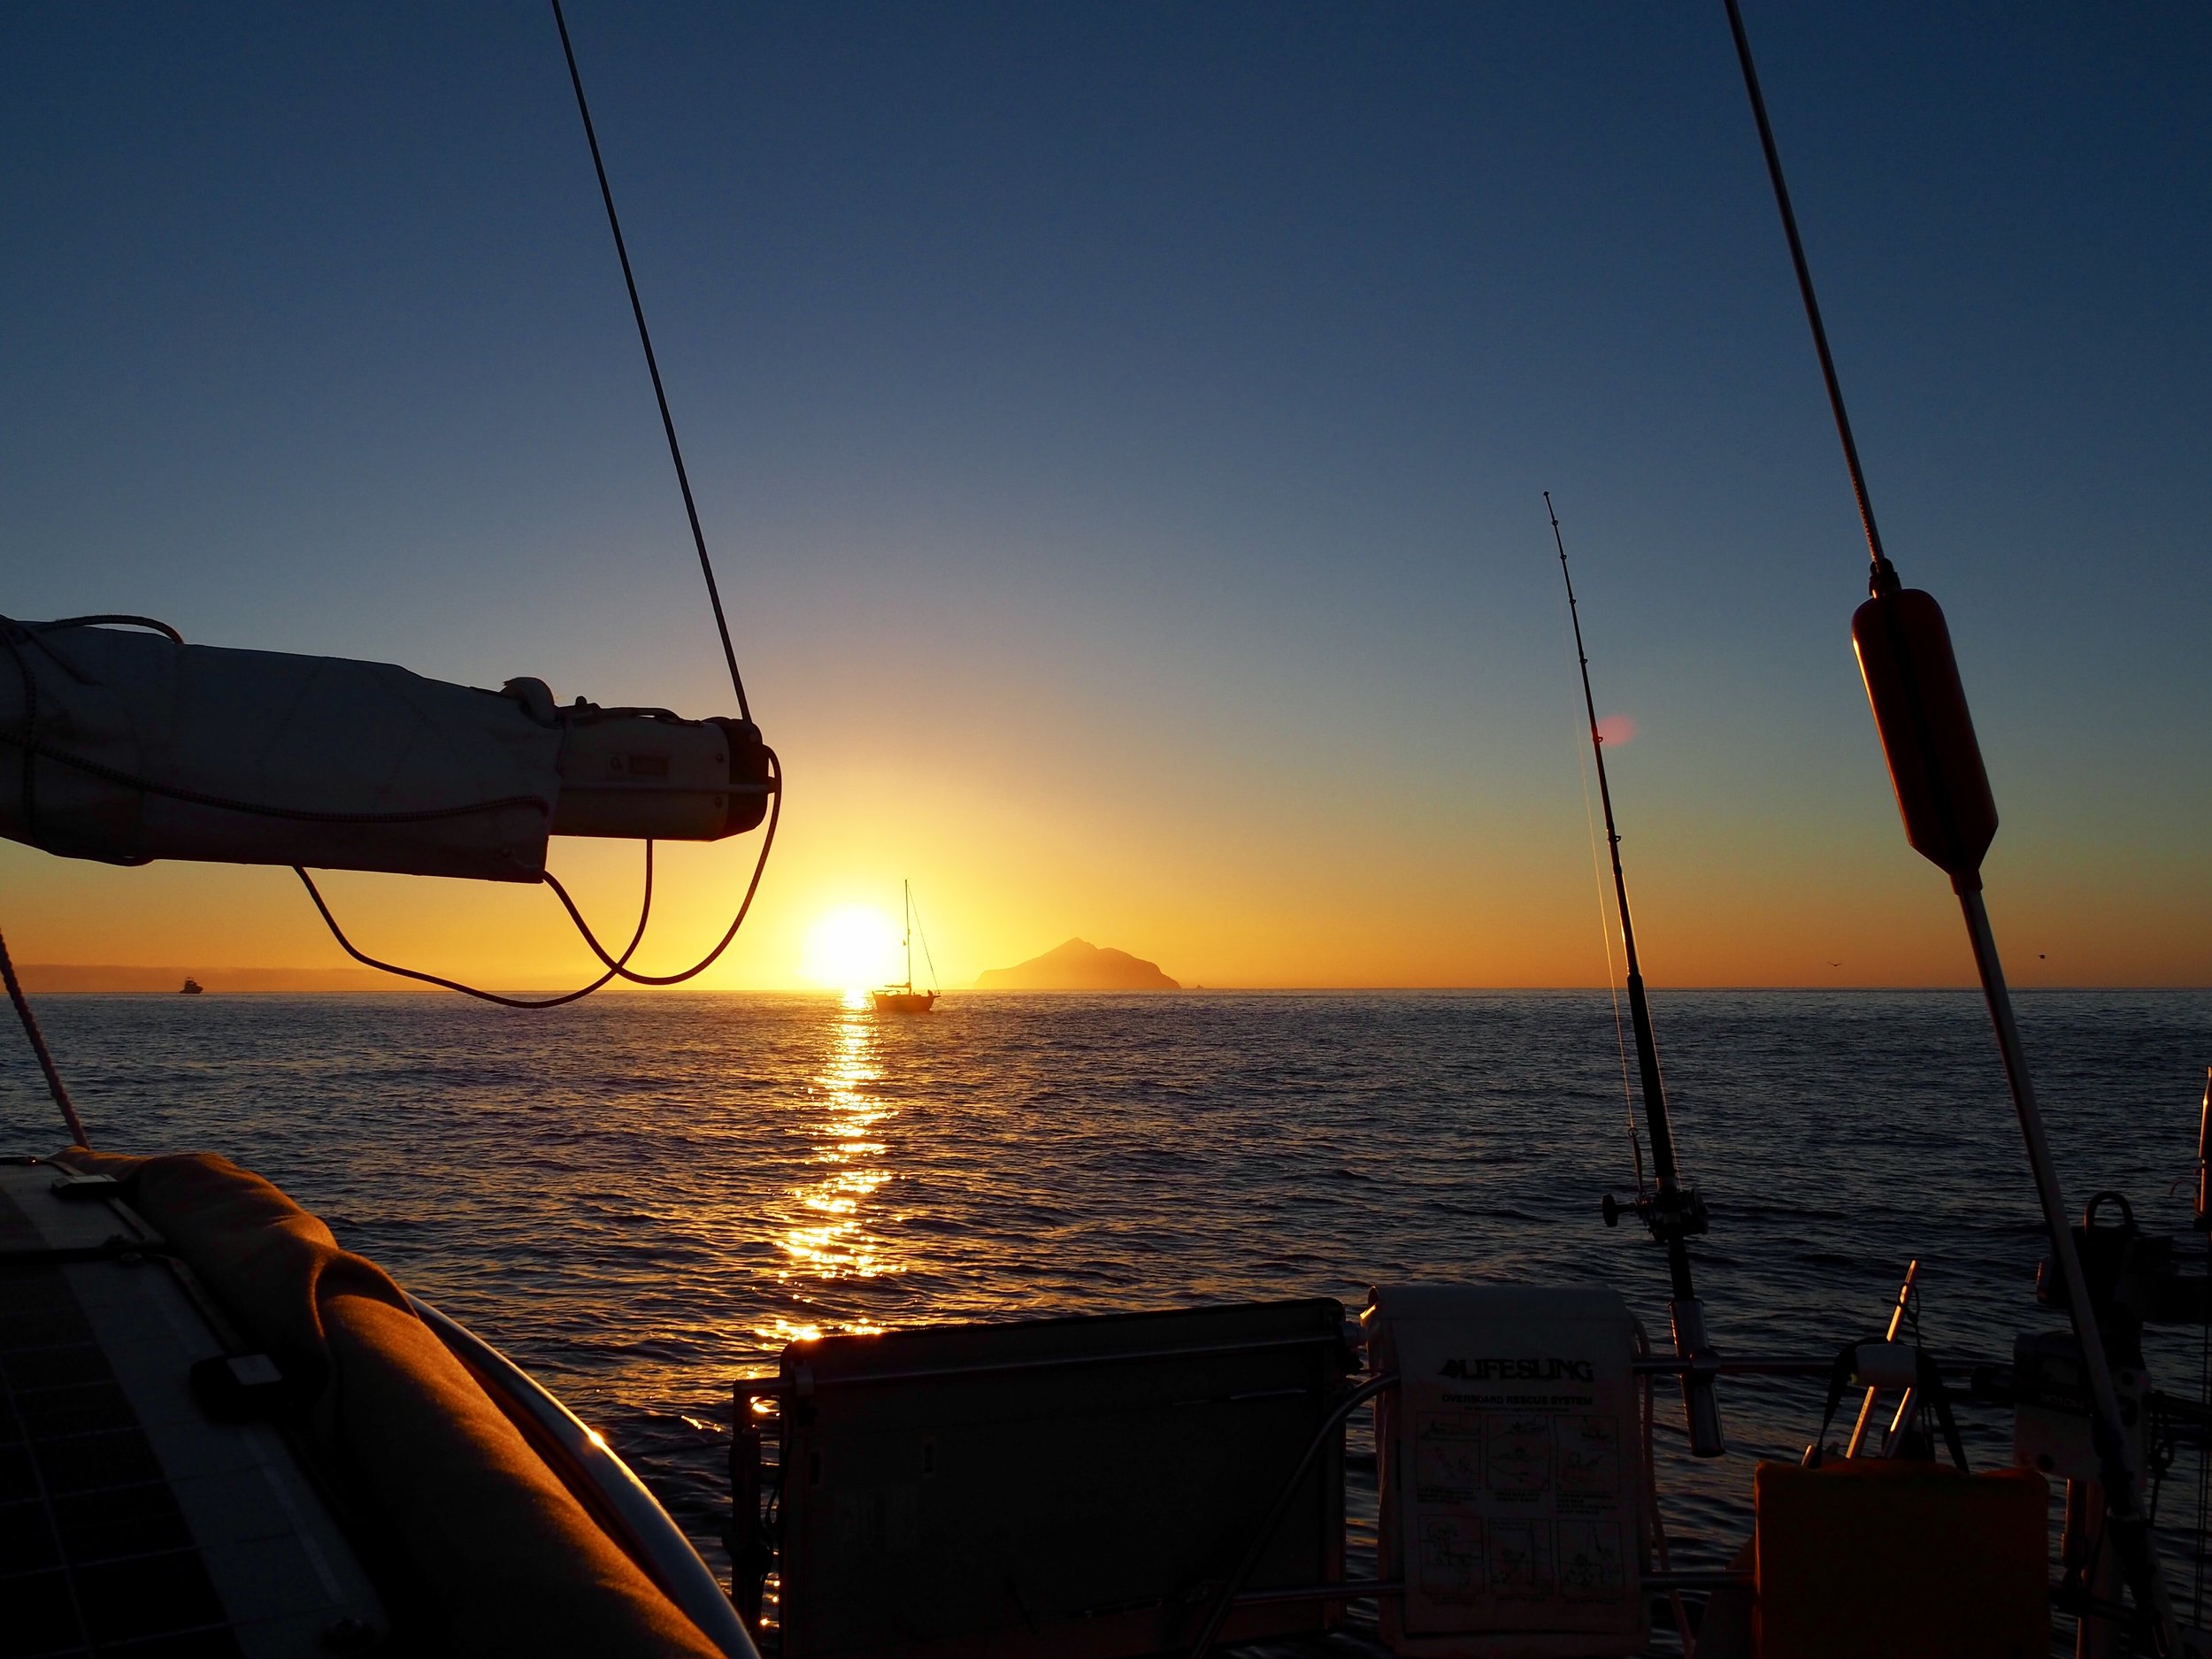 Sunrise from Smuggler's Cove, looking out at Anacapa